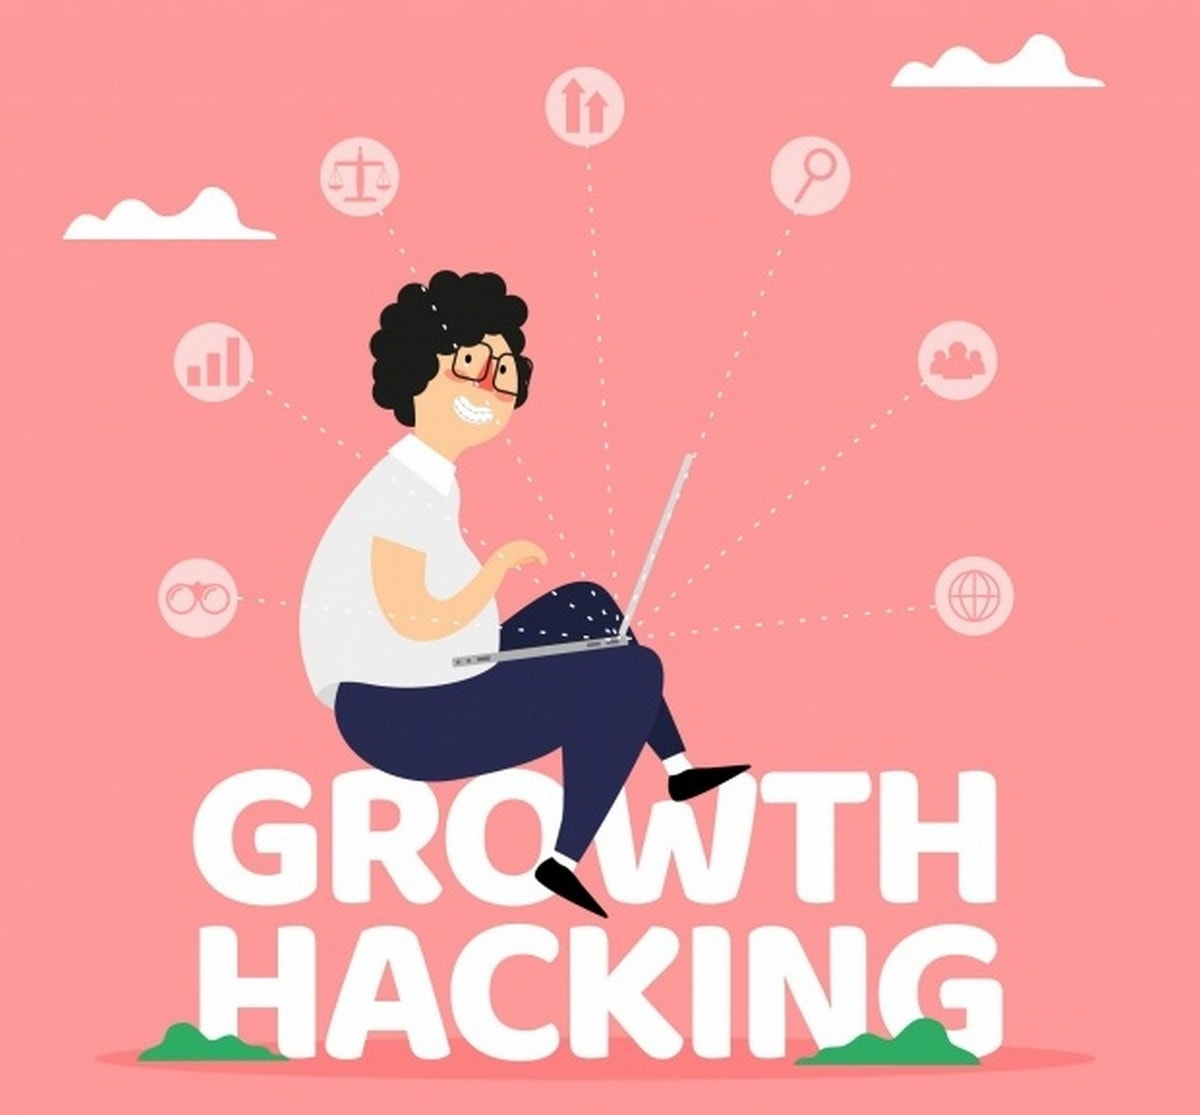 How To Use Growth Hacking For Your Business?